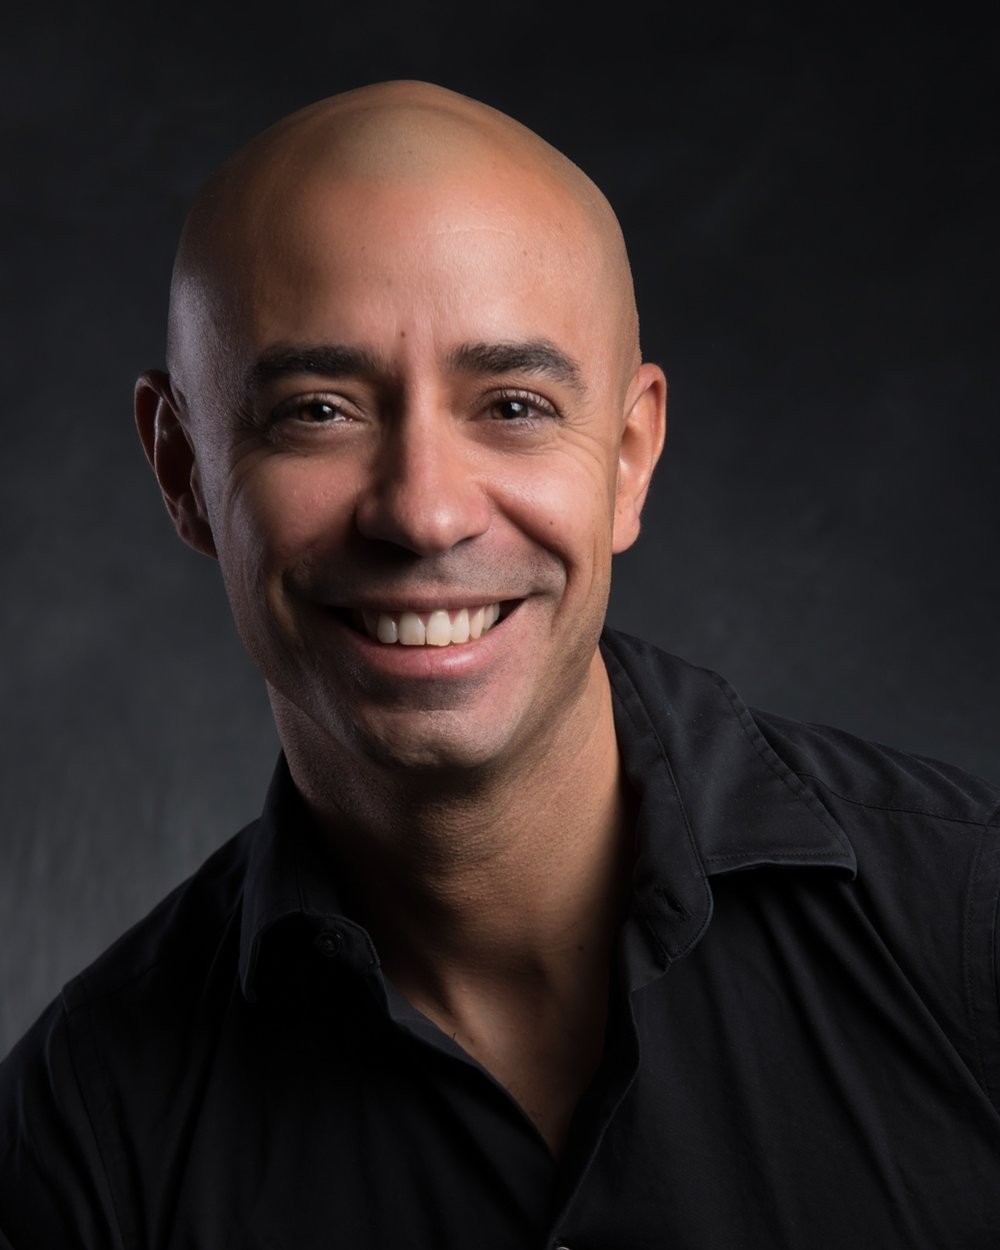 studio headshot of a smiling man for professional branding